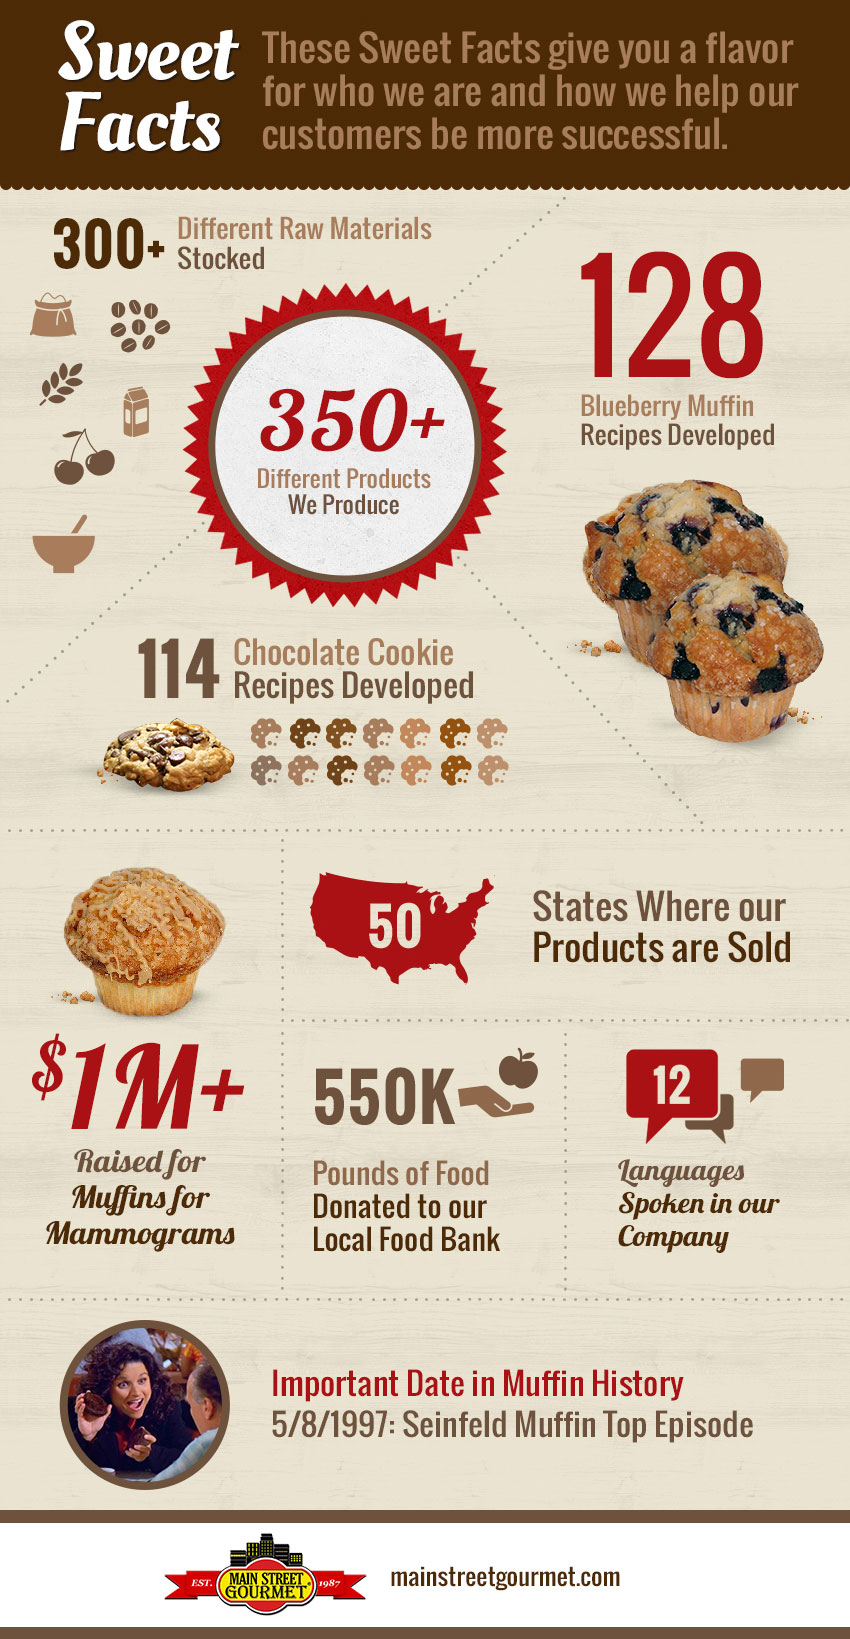 Sweet Facts Infographic